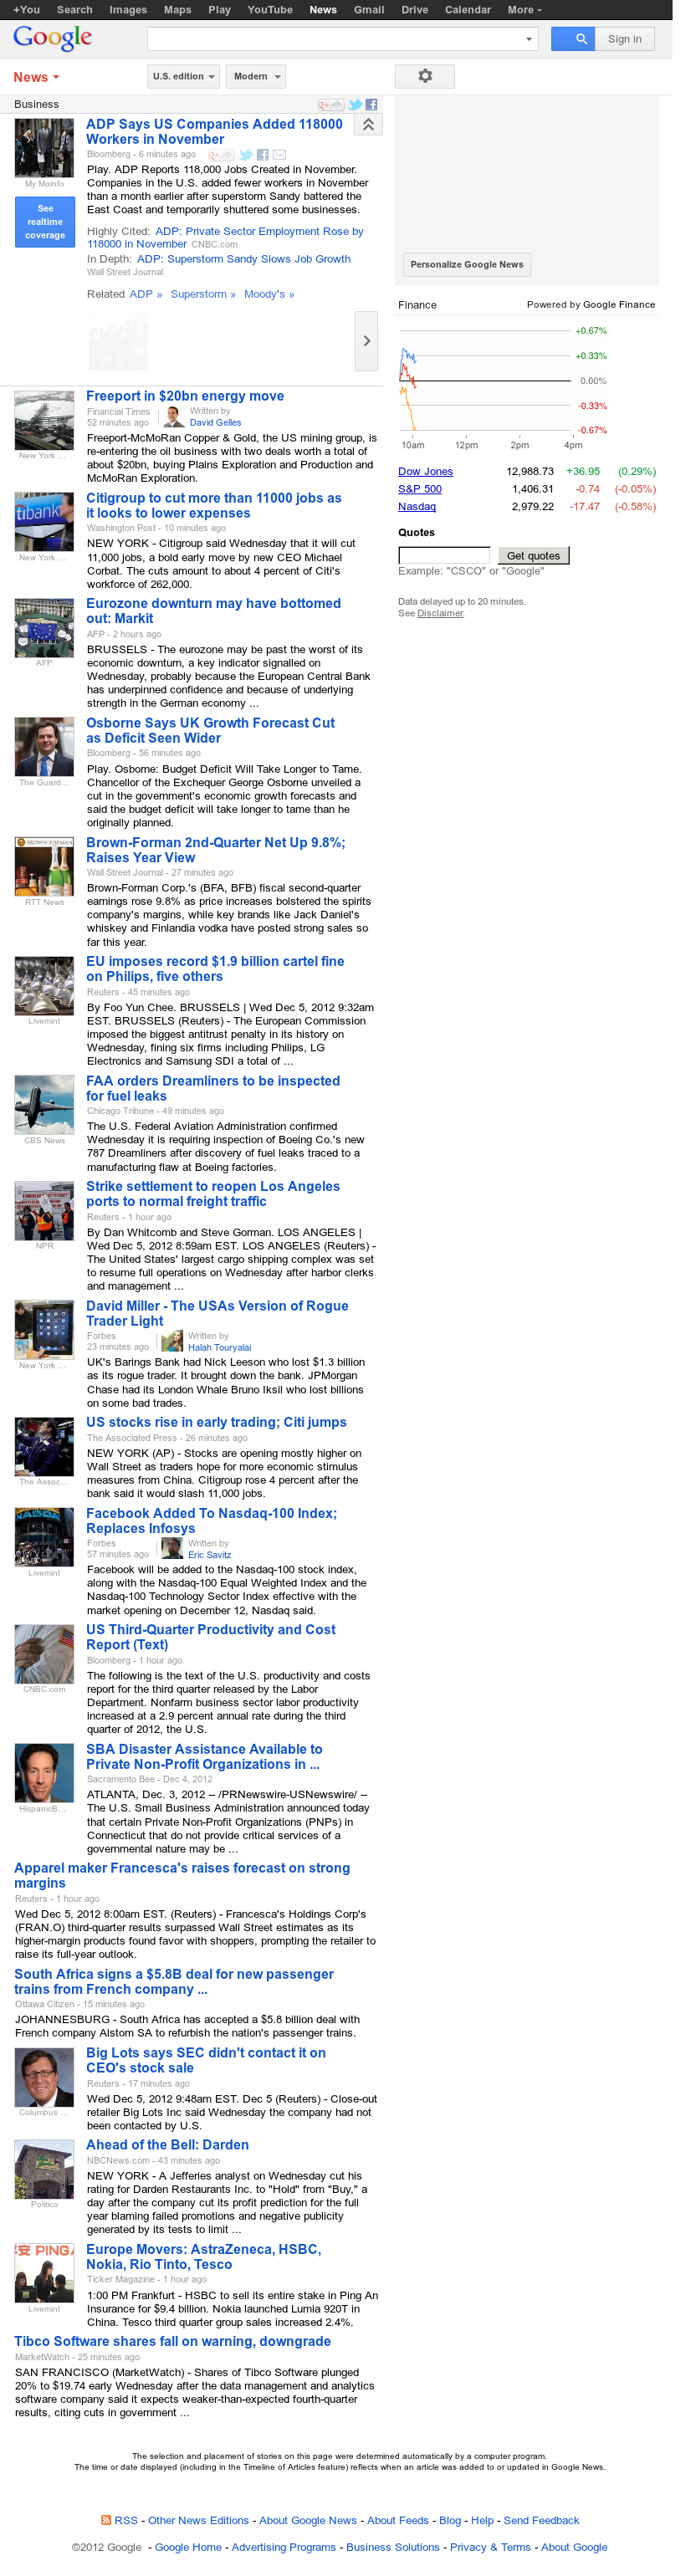 Google News: Business at Wednesday Dec. 5, 2012, 3:17 p.m. UTC